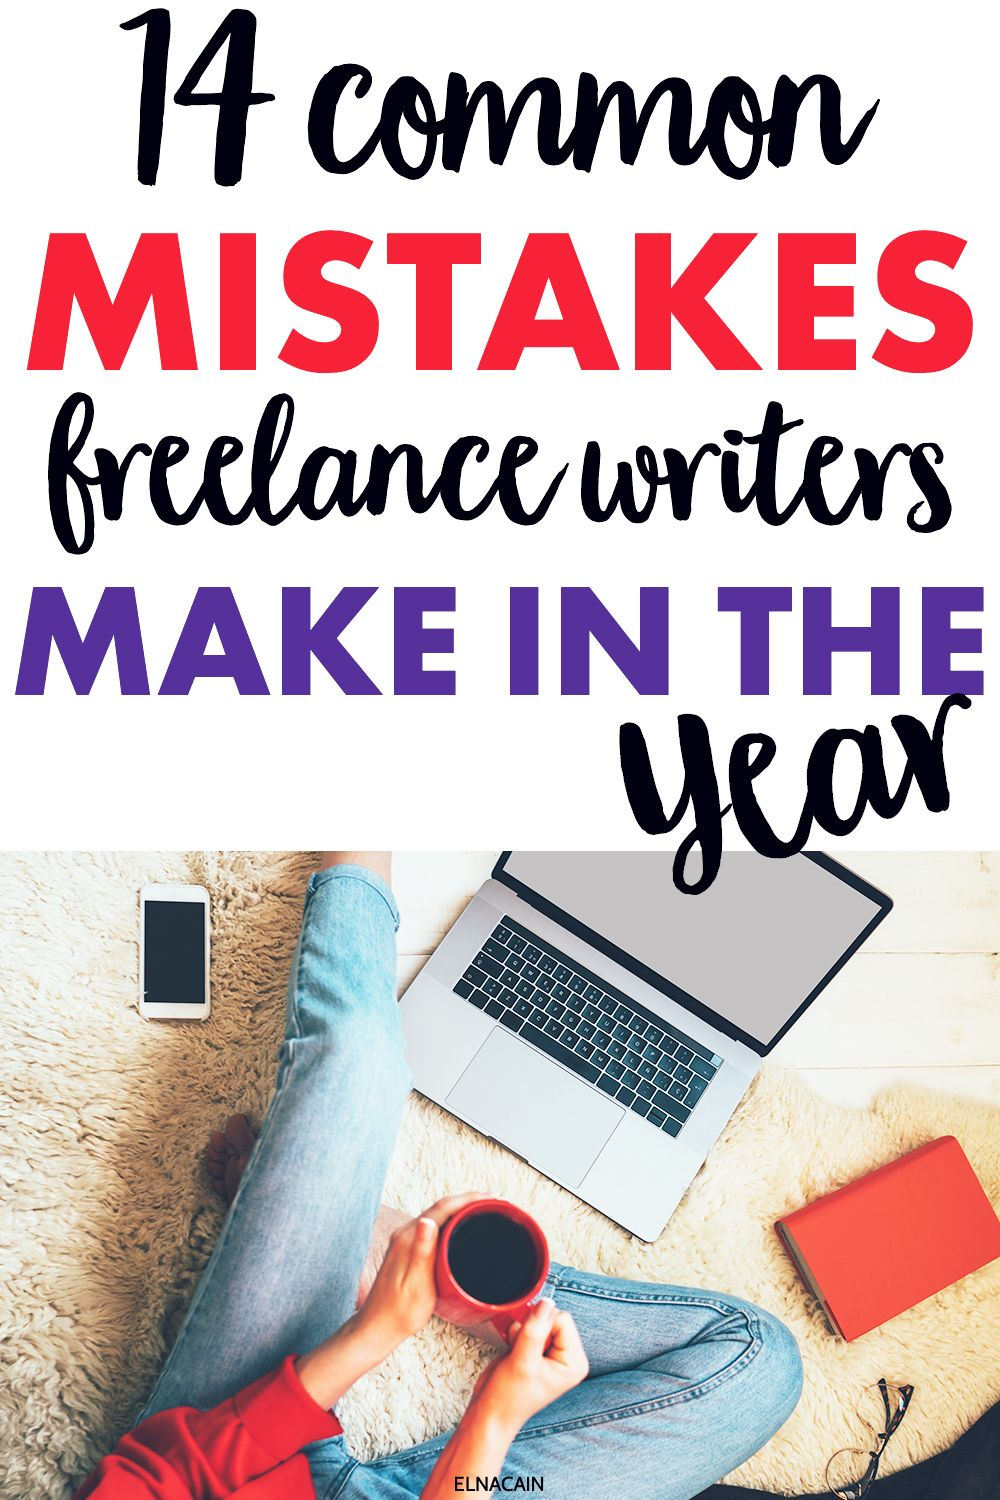 20 Common Mistakes Freelance Writers Make in Their First Year